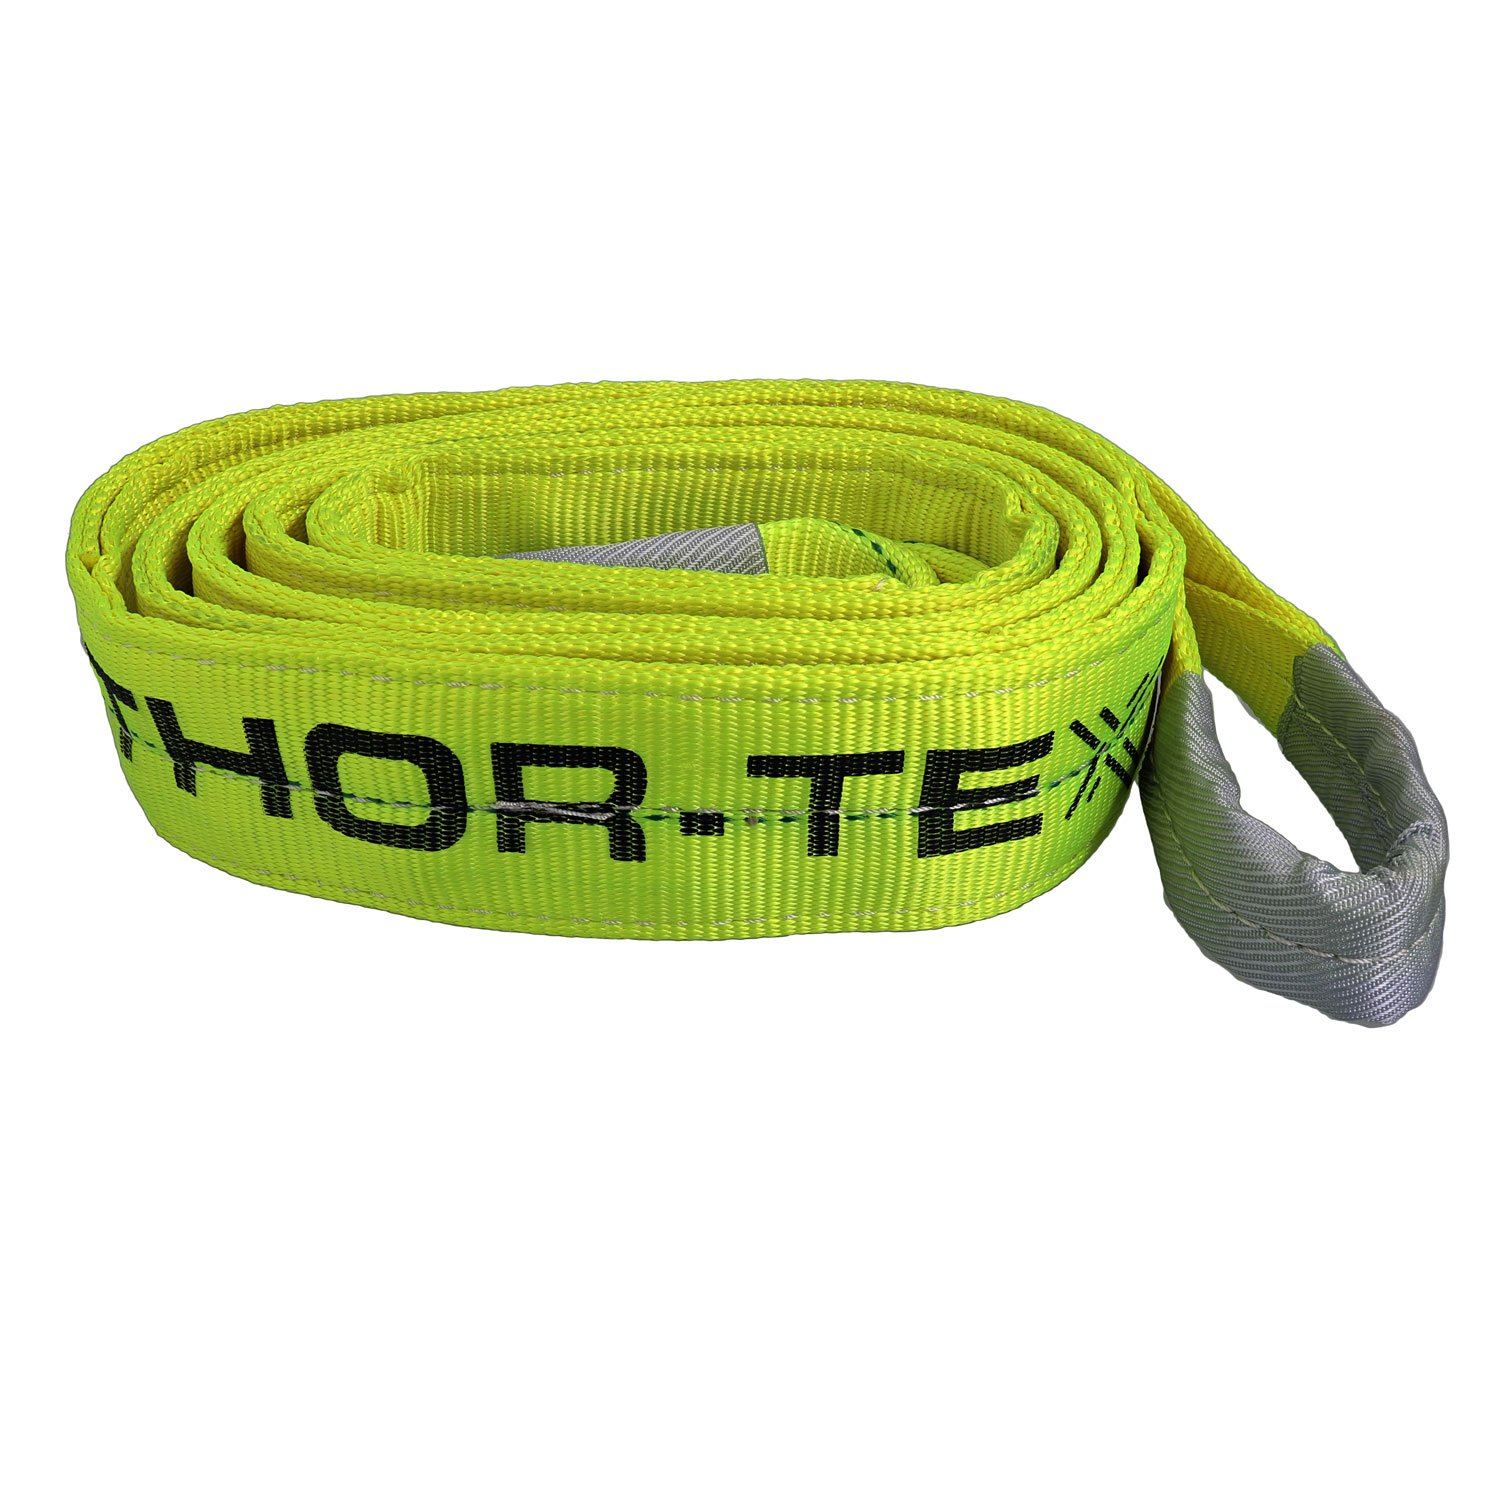 Thor-Tex 4'' X 20', 2-Ply, Eye-Eye Synthetic Web Sling